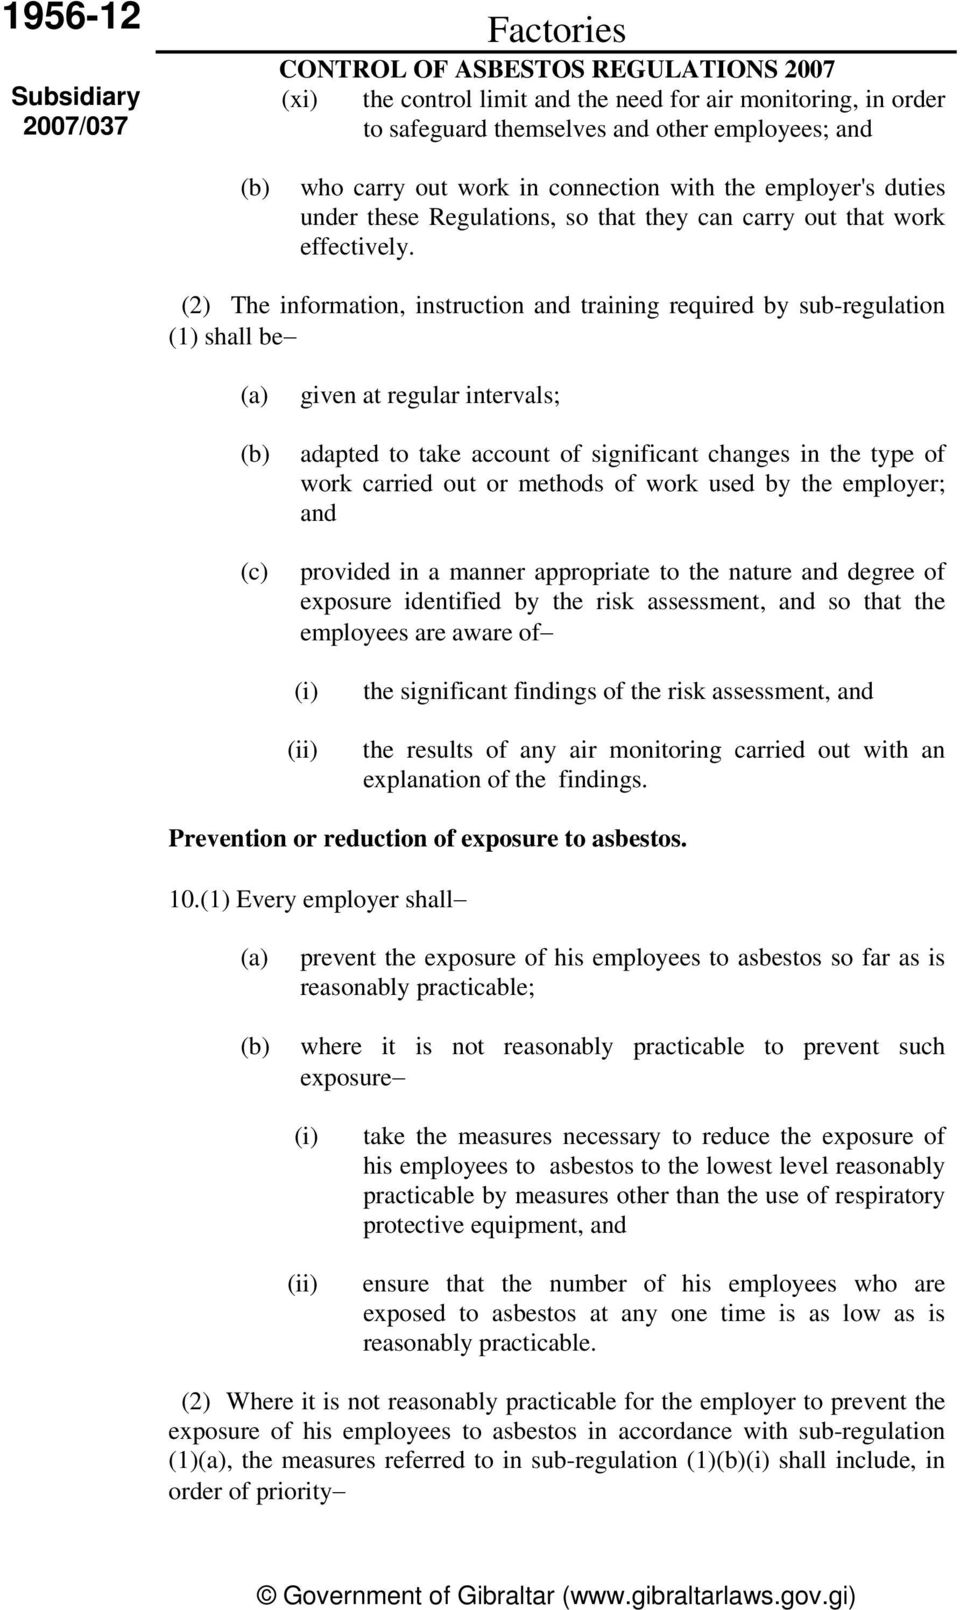 (2) The information, instruction and training required by sub-regulation (1) shall be given at regular intervals; adapted to take account of significant changes in the type of work carried out or